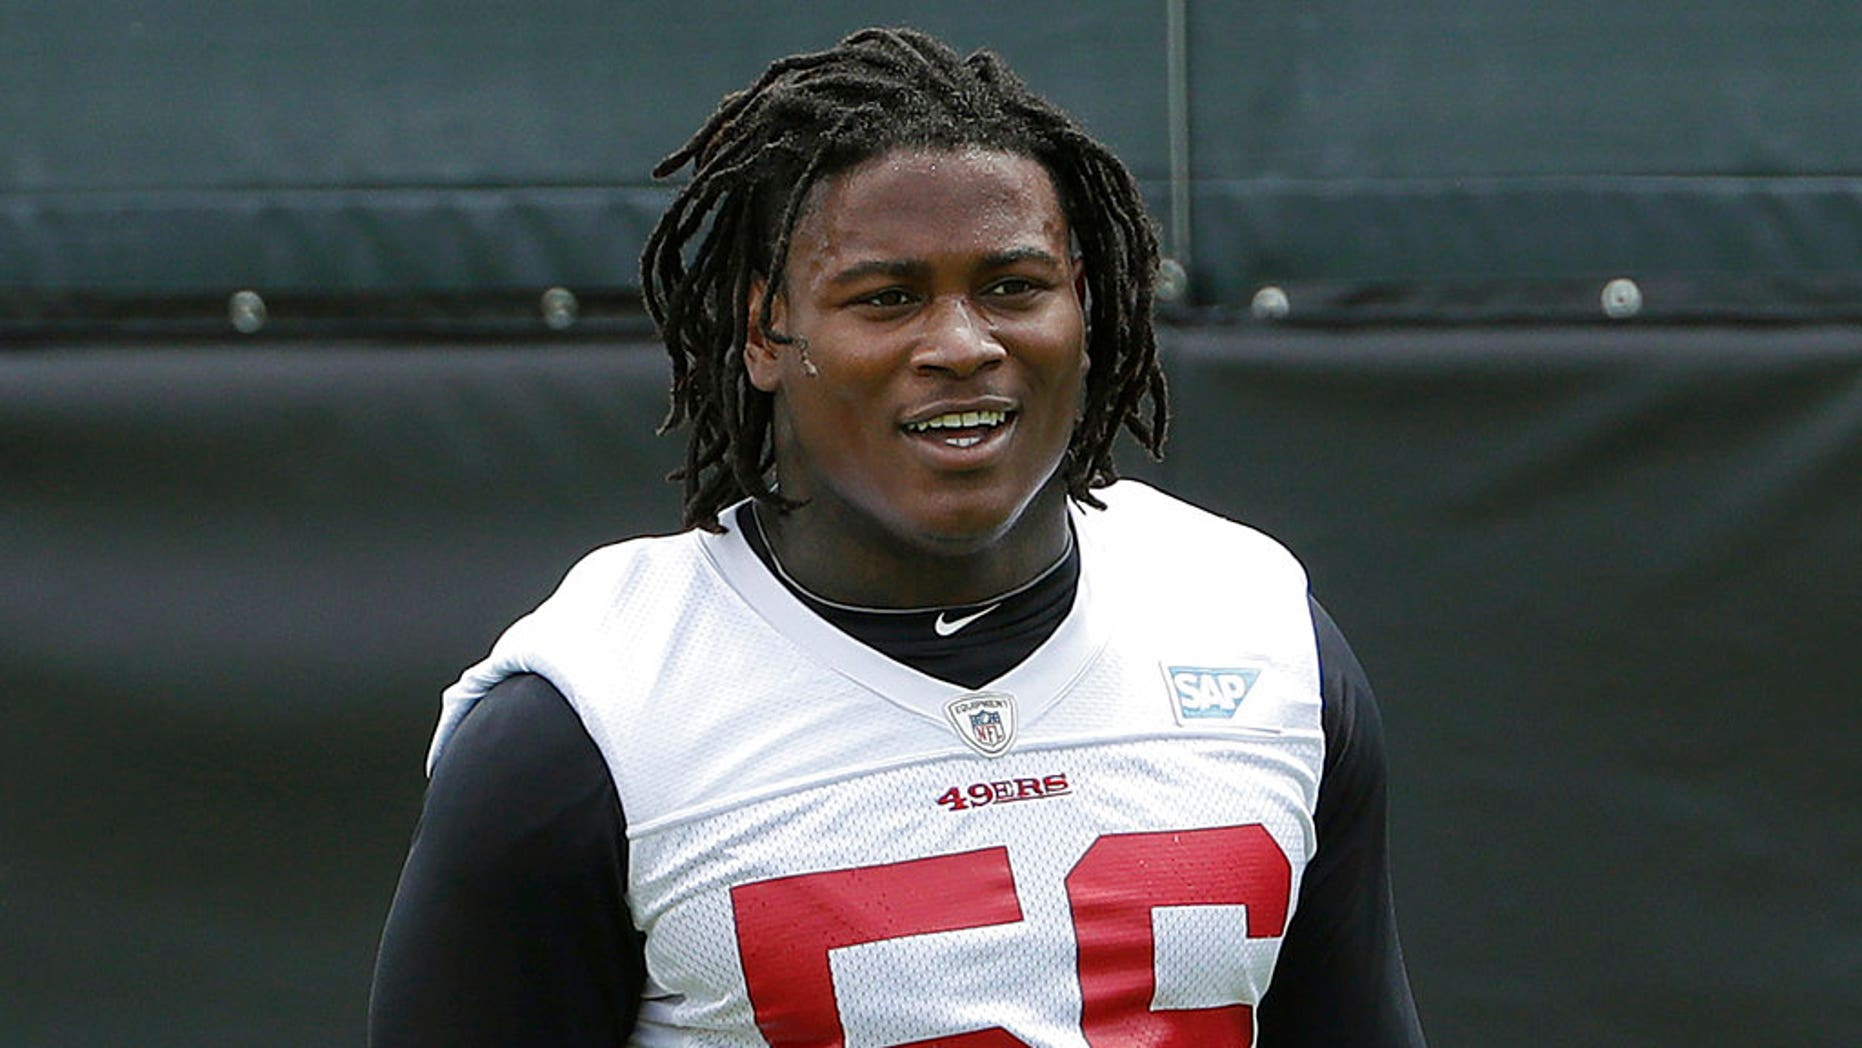 FILE - In this May 30, 2018, file photo, San Francisco 49ers linebacker Reuben Foster walks on the field during a practice at the team's NFL football training facility in Santa Clara, Calif. Foster was arrested Saturday, Nov. 24, at the team hotel on charges of domestic violence.